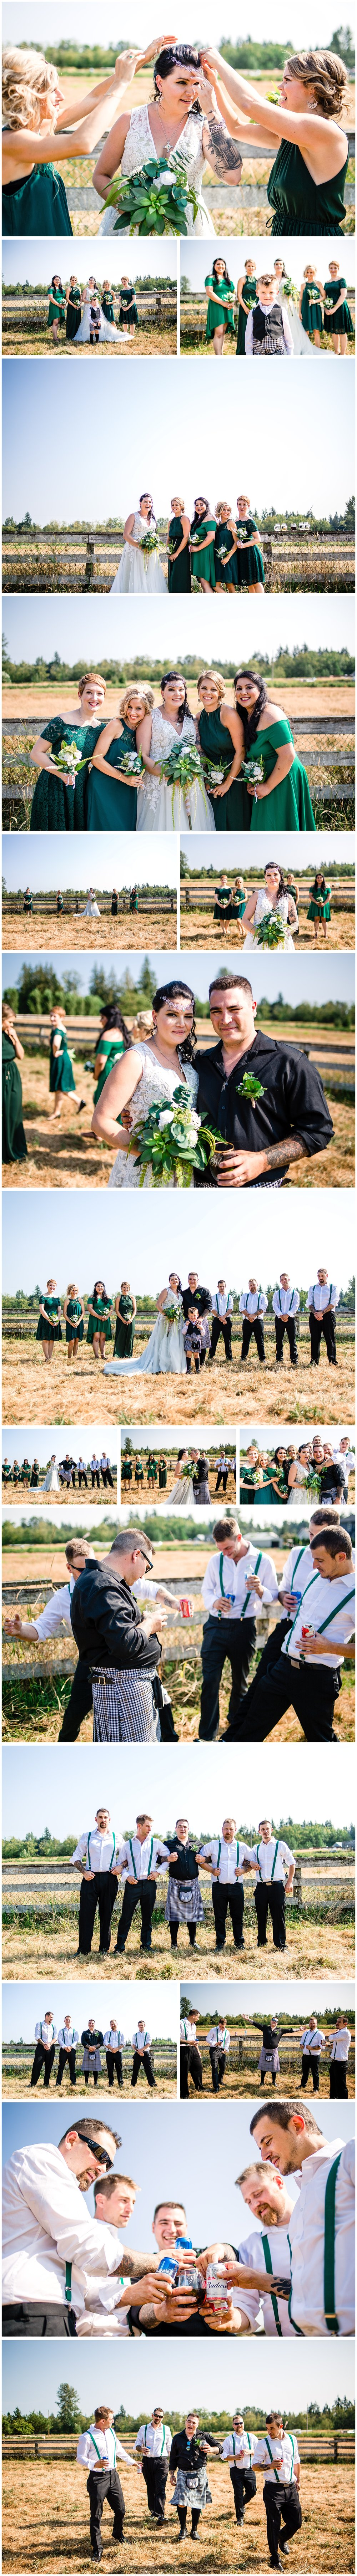 White-Owl-Barn-langley-bc-wedding-photographer-rustic-bbq-foodtruck-scottish-emerald-green-drinks_0005.jpg